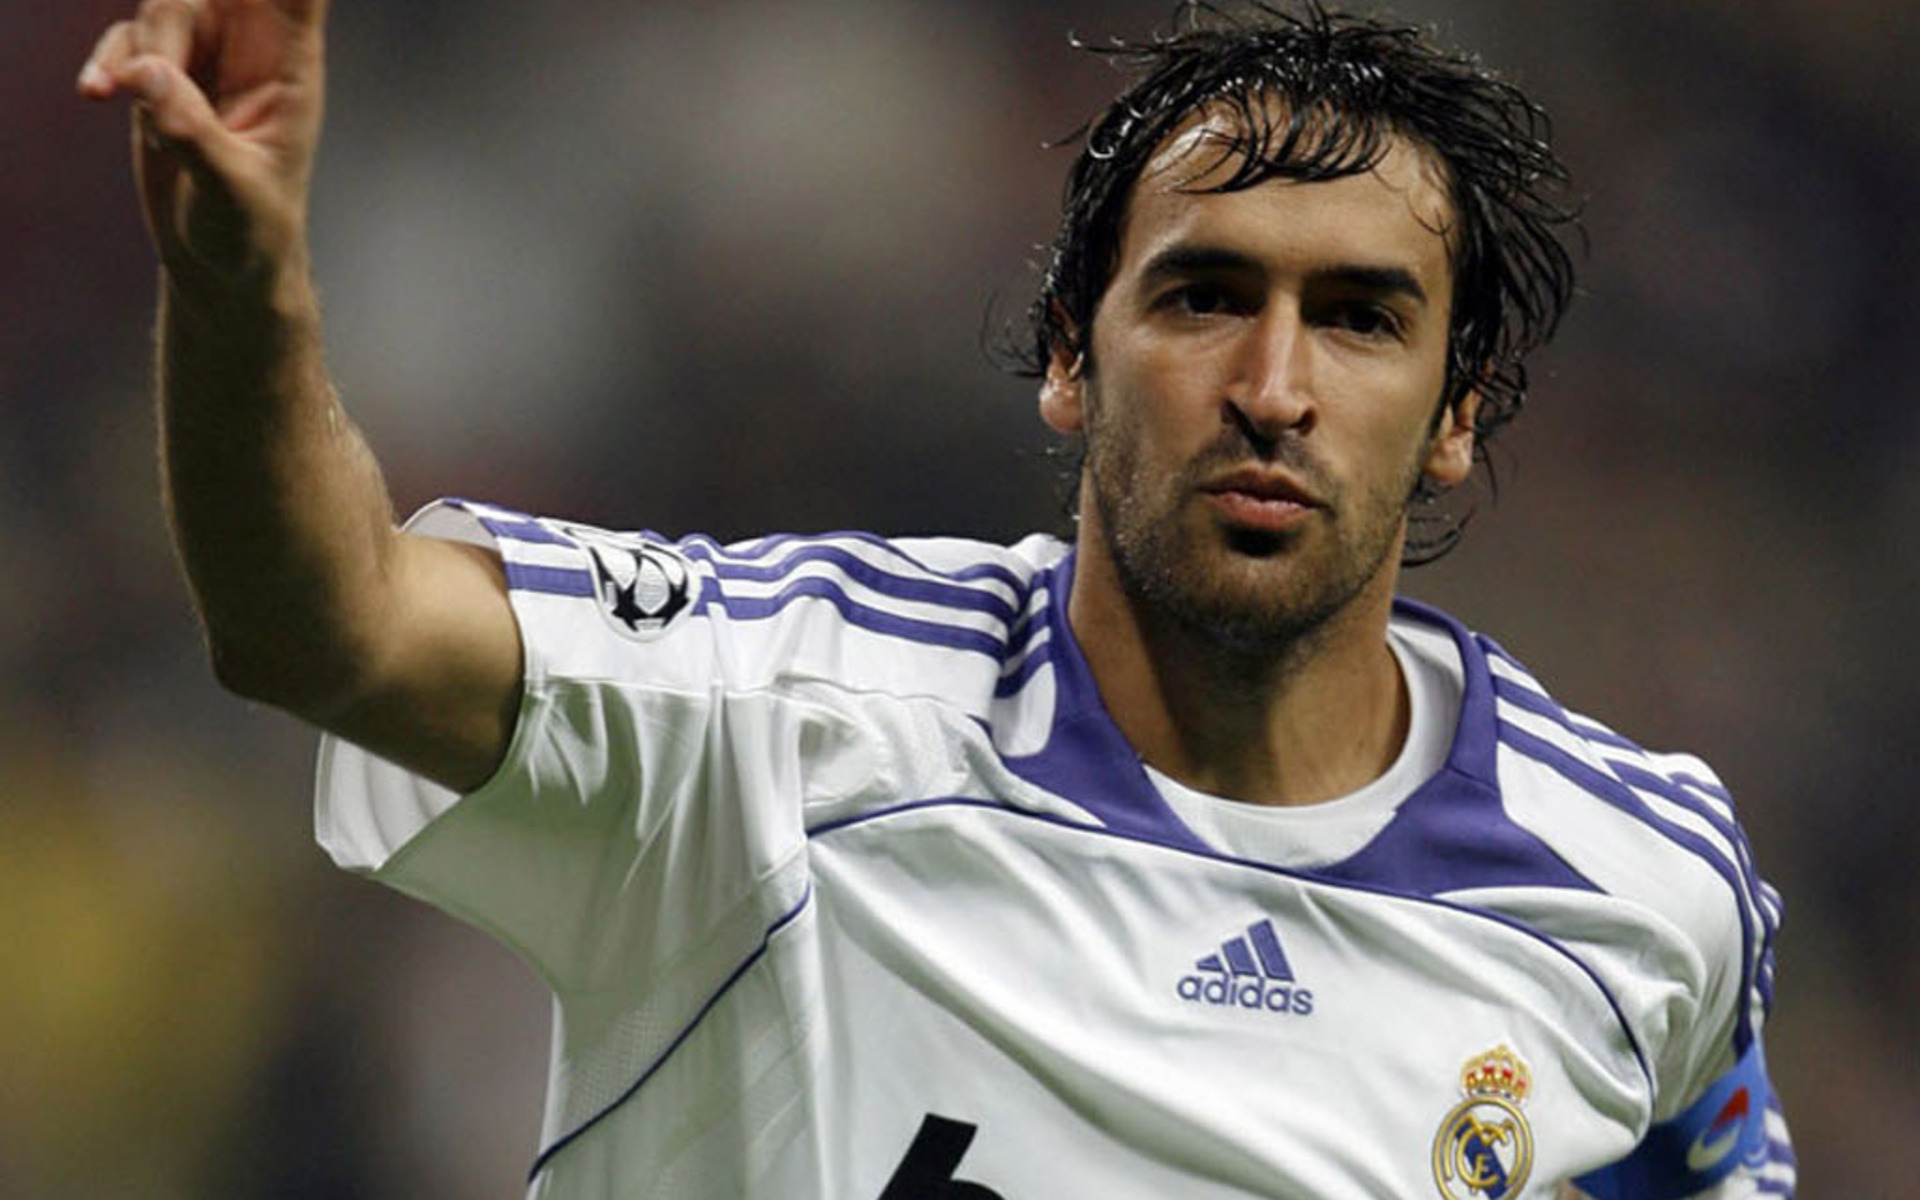 Real Madrid and Spain legend Raul retires after 21 years of glory